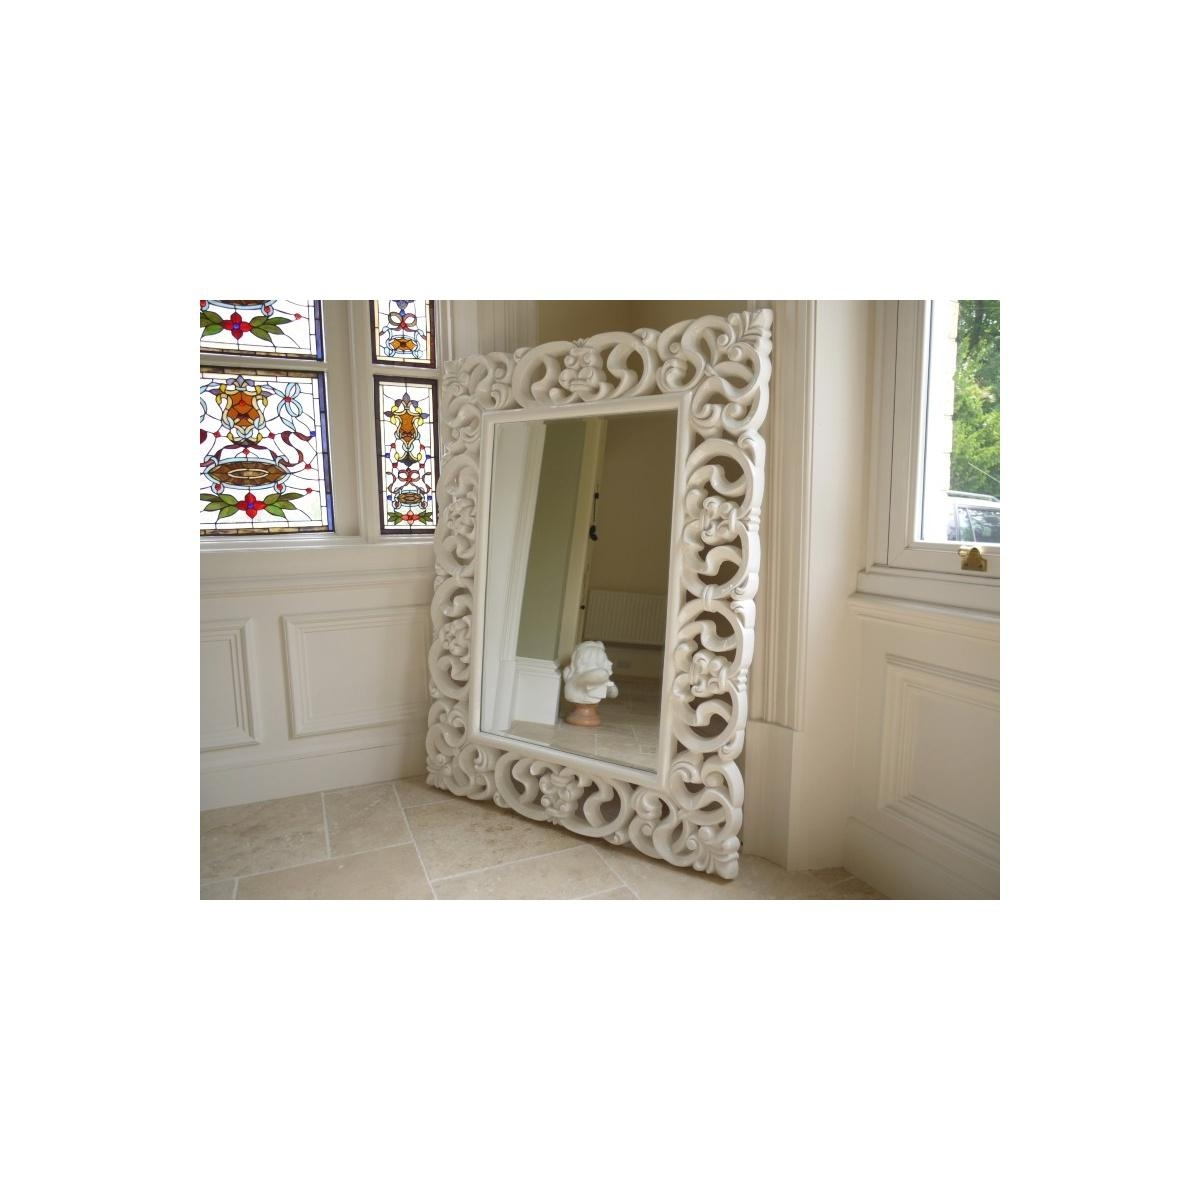 Buy Large French White Ornate Wall Mirror | Swanky Interiors Intended For Large White French Mirror (Image 3 of 20)